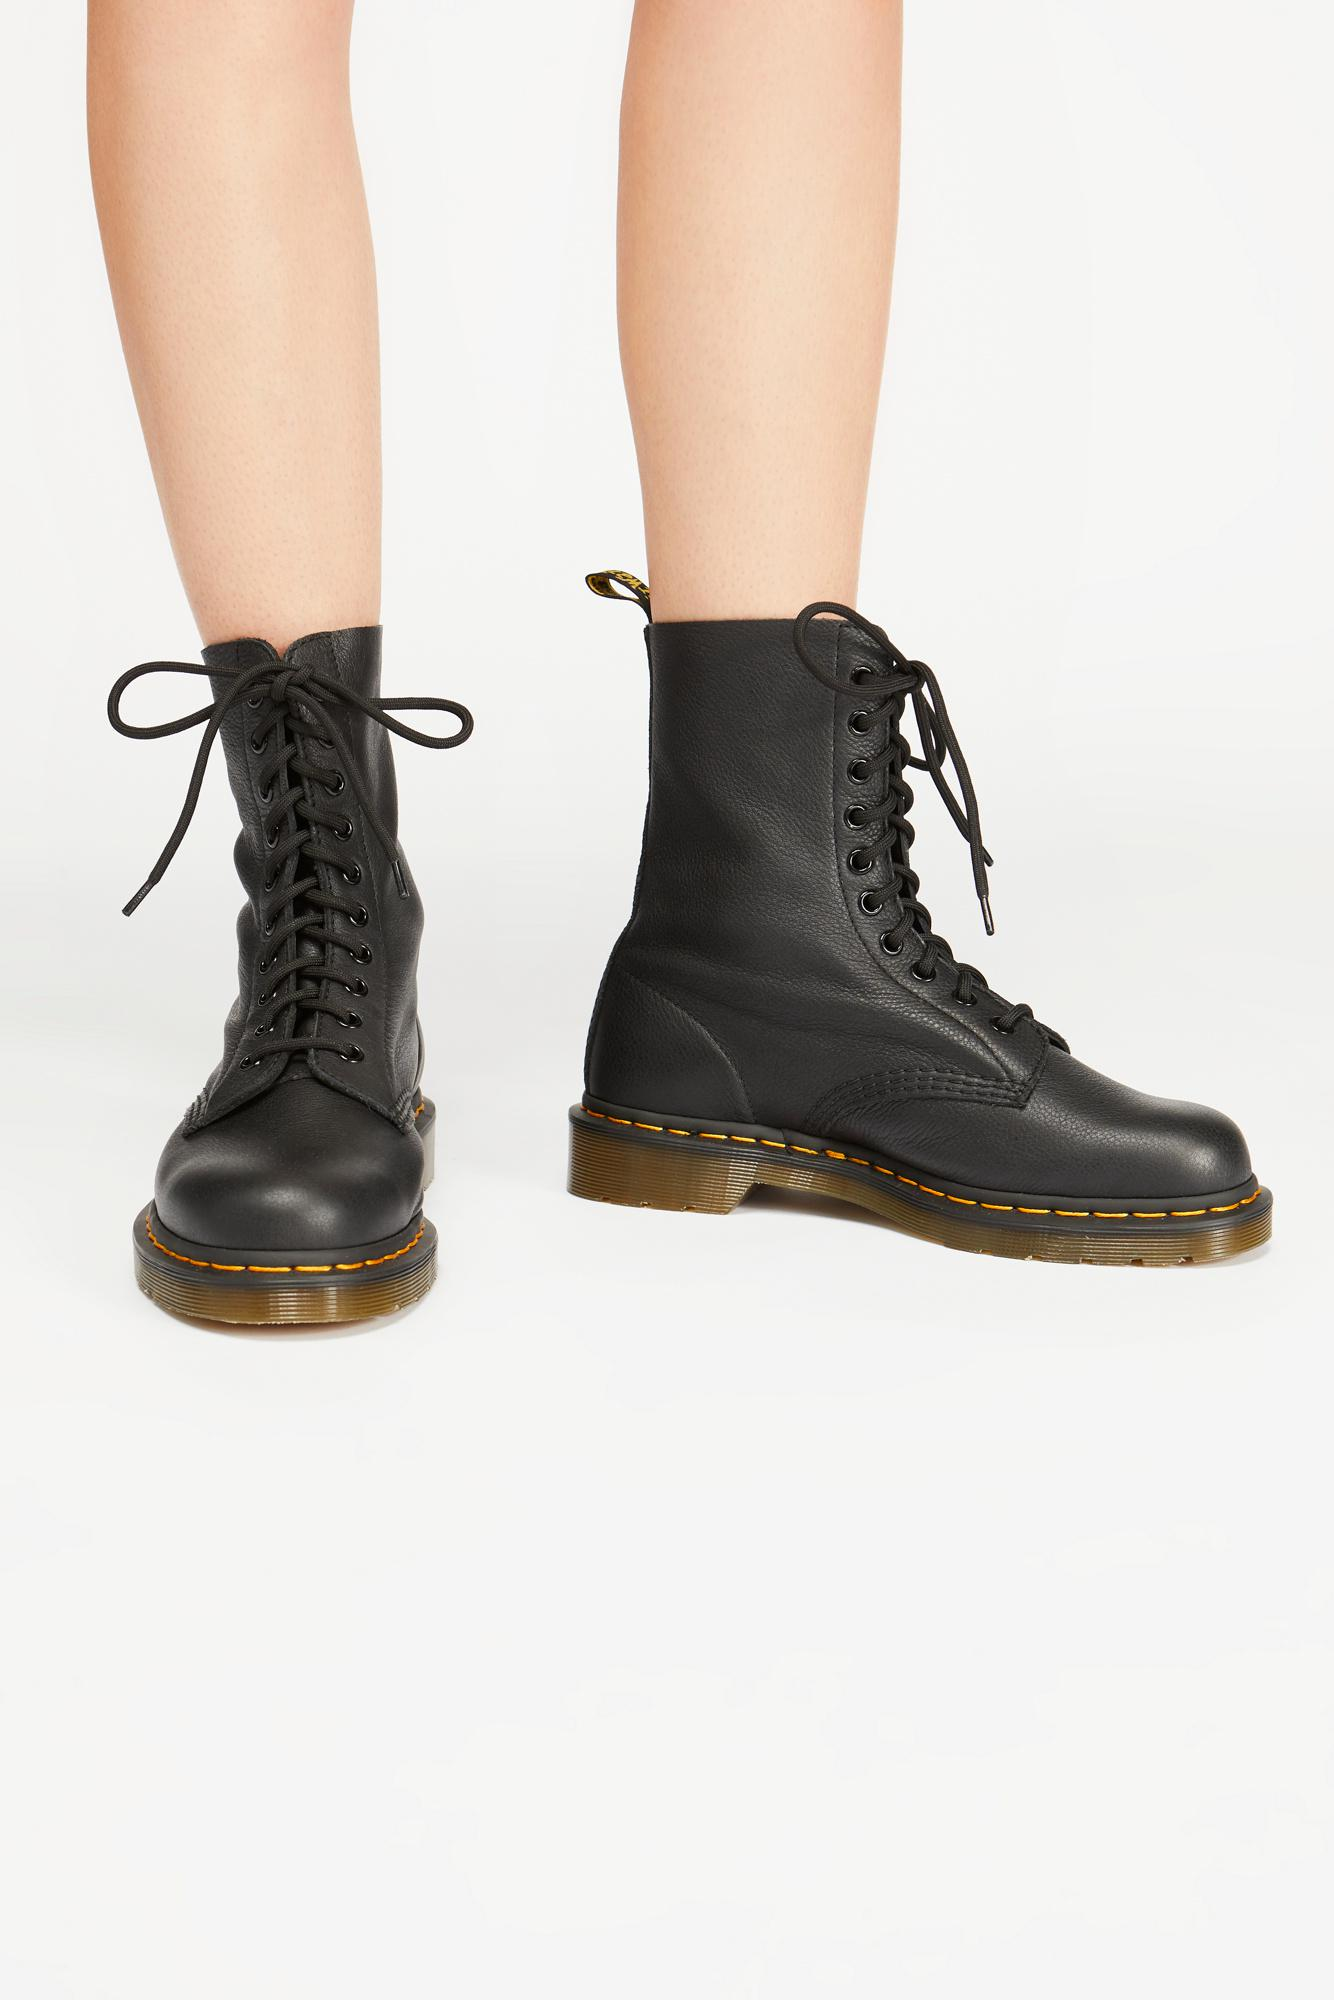 a05f0ae2e35 Free People Dr. Martens 1490 10 Eye Lace-up Boot in Black - Lyst